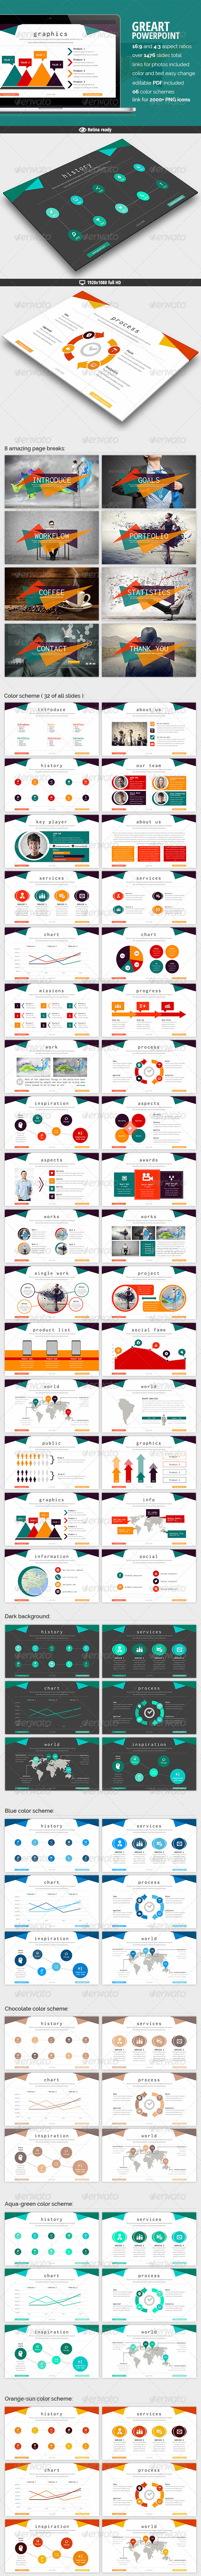 GraphicRiver Greart Powerpoint Presentation 7791685